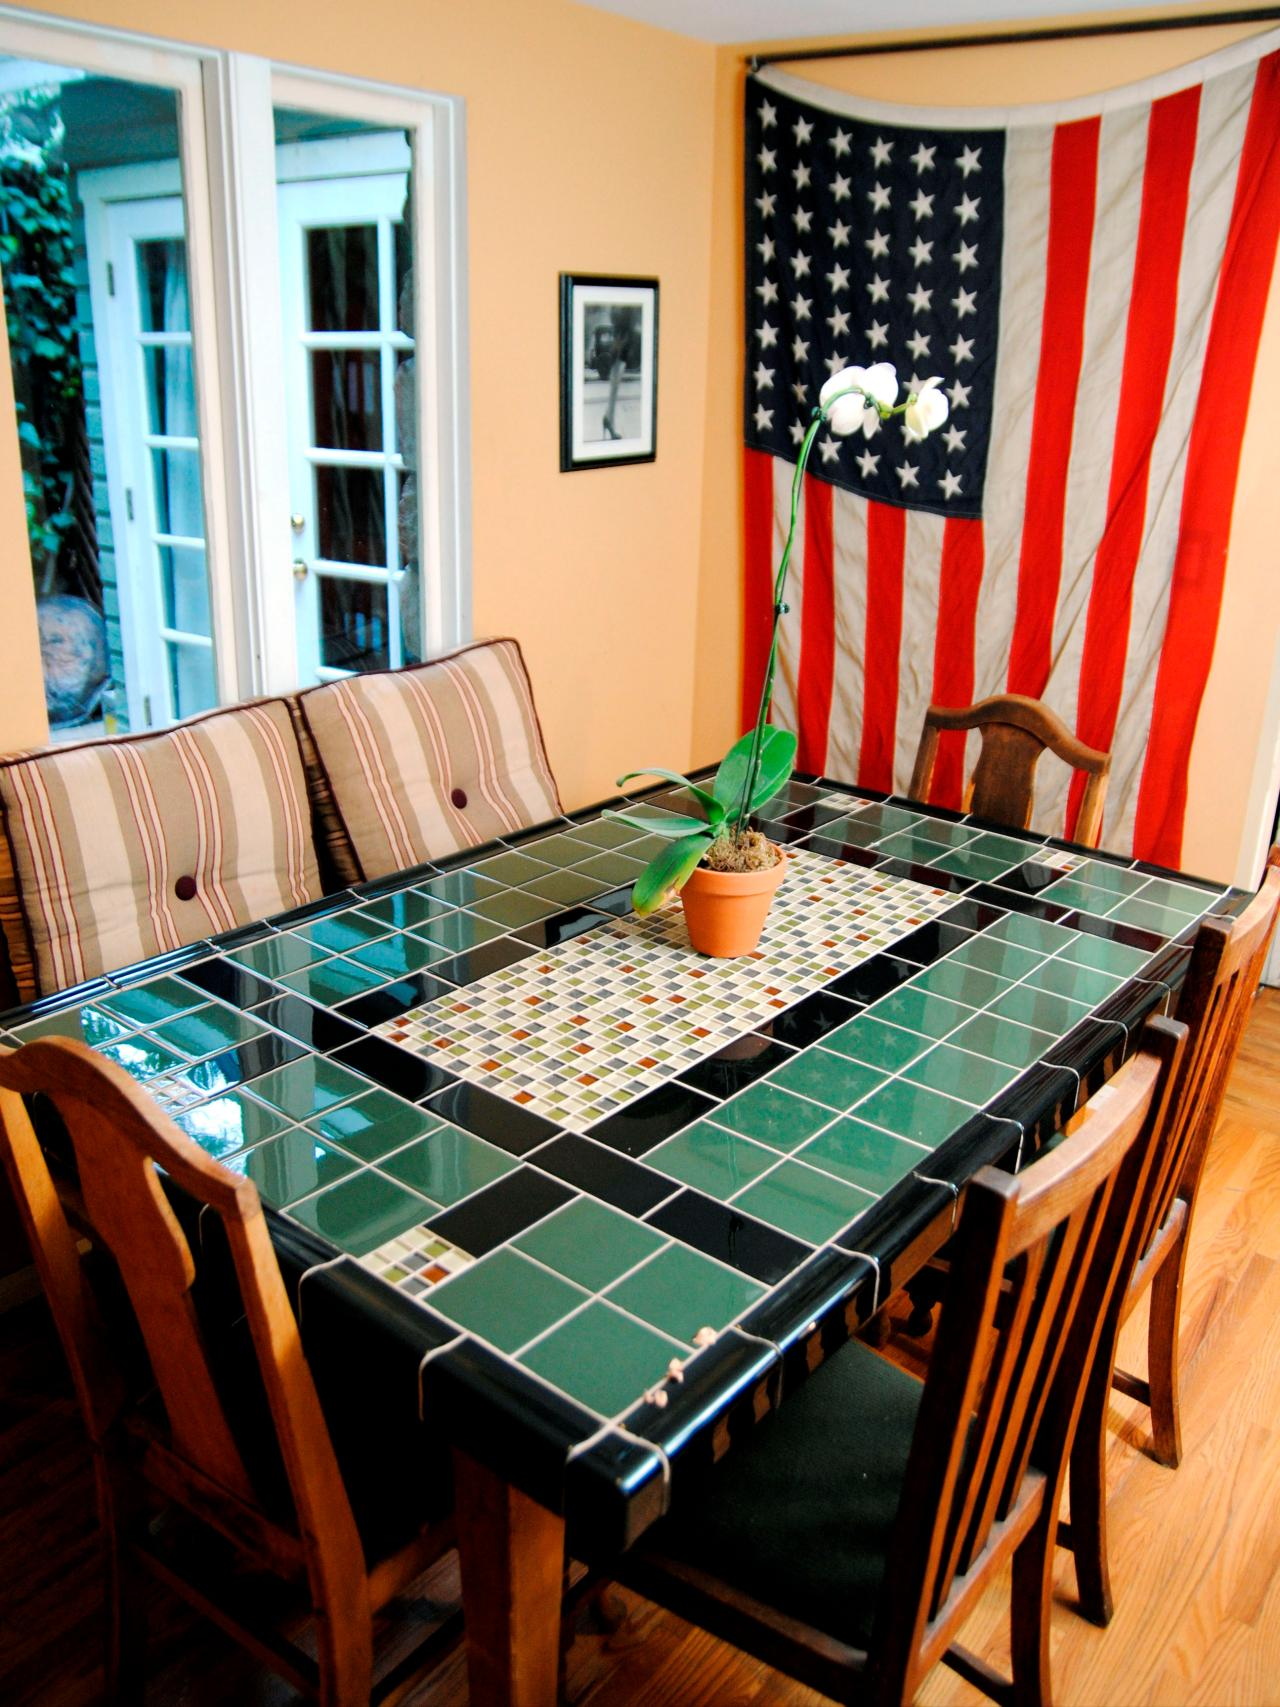 Create a Mosaic Tile Tabletop